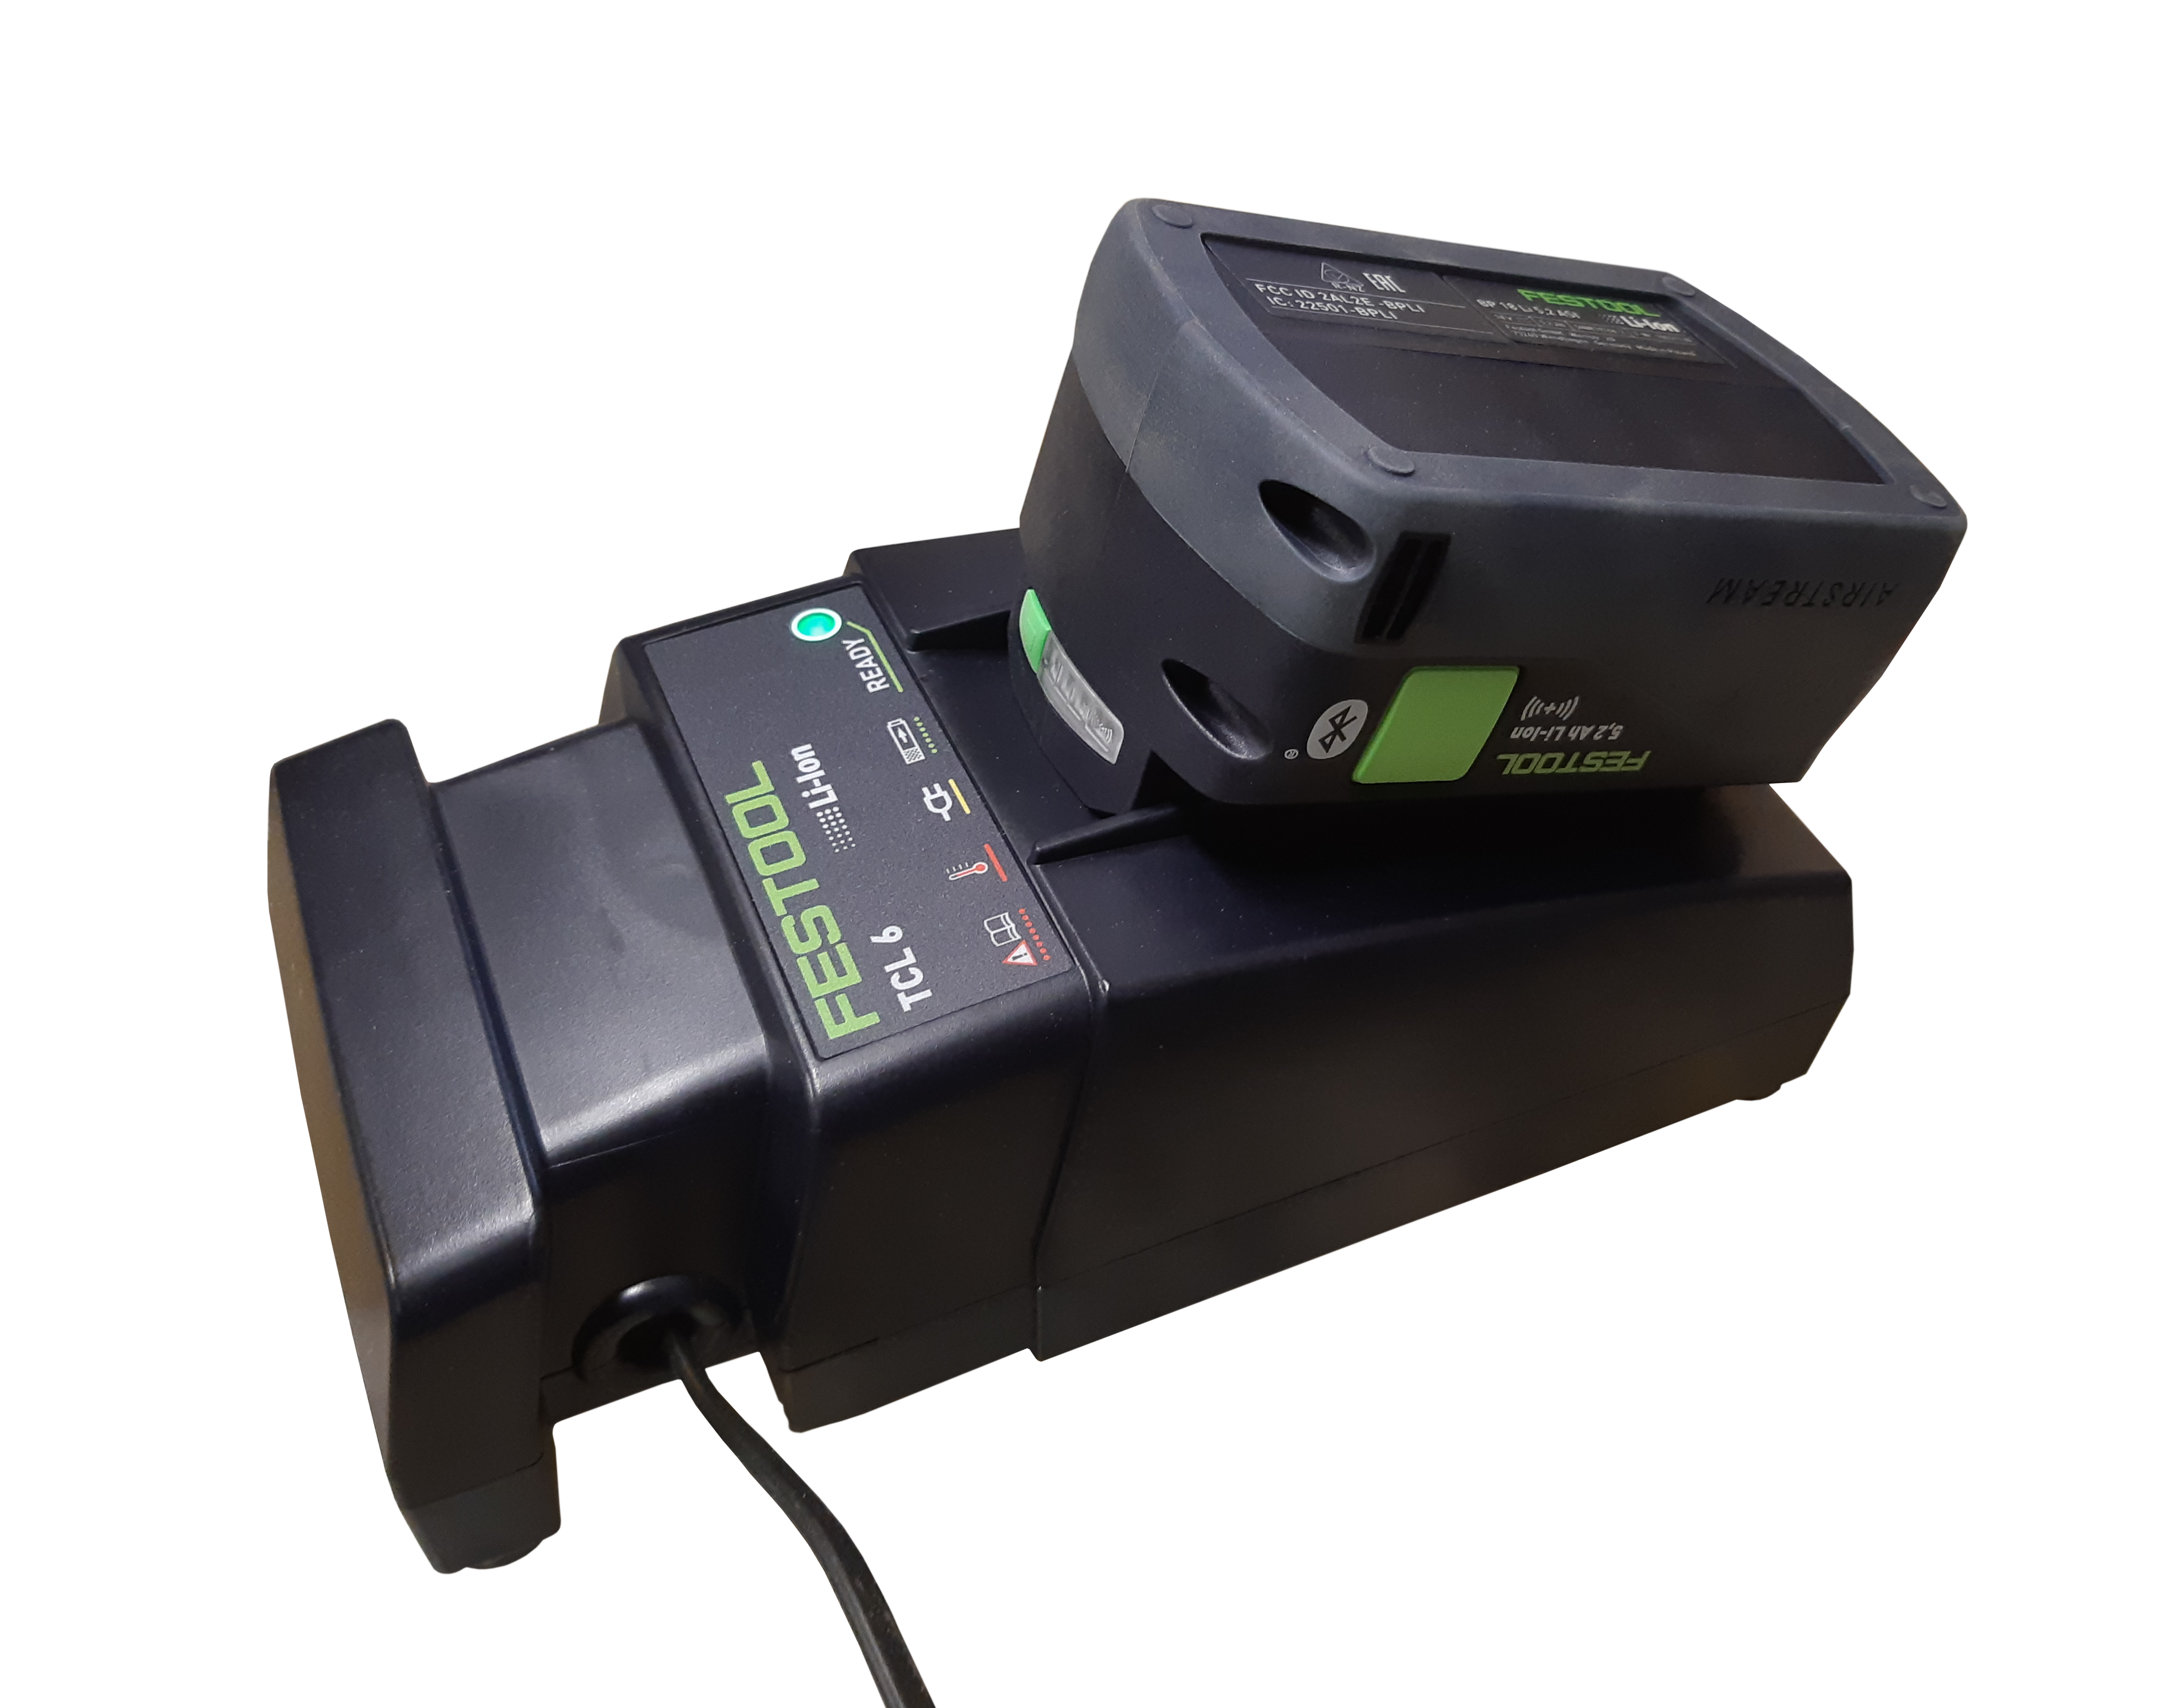 TCL 6 charger